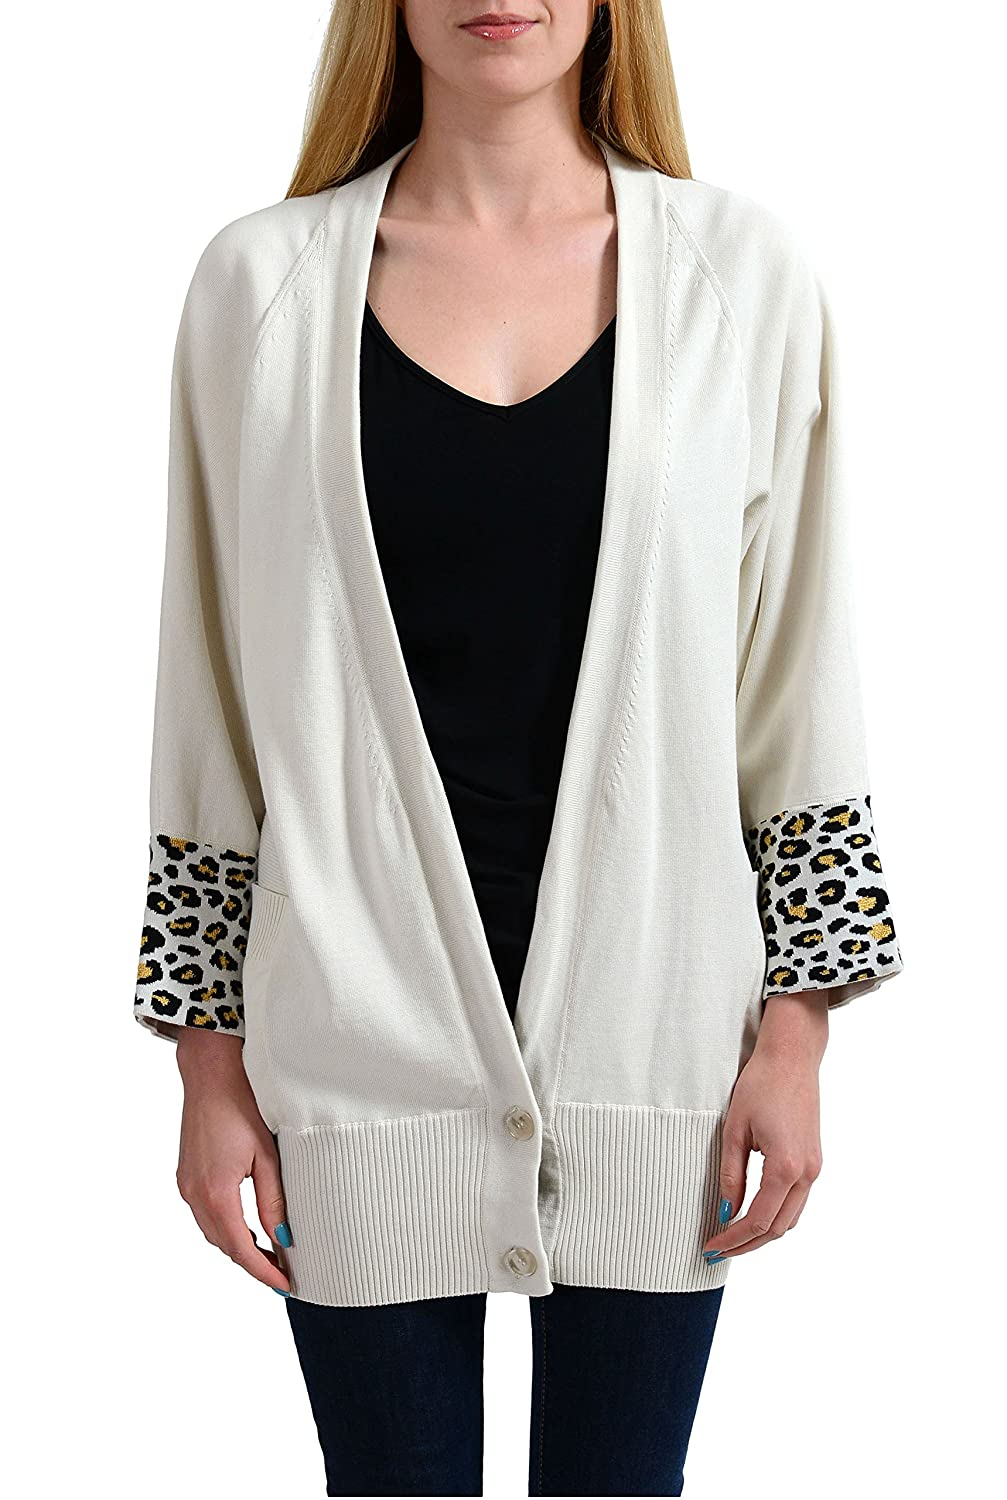 Just Cavalli Ivory Knitted Women's Cardigan Sweater US S IT 40